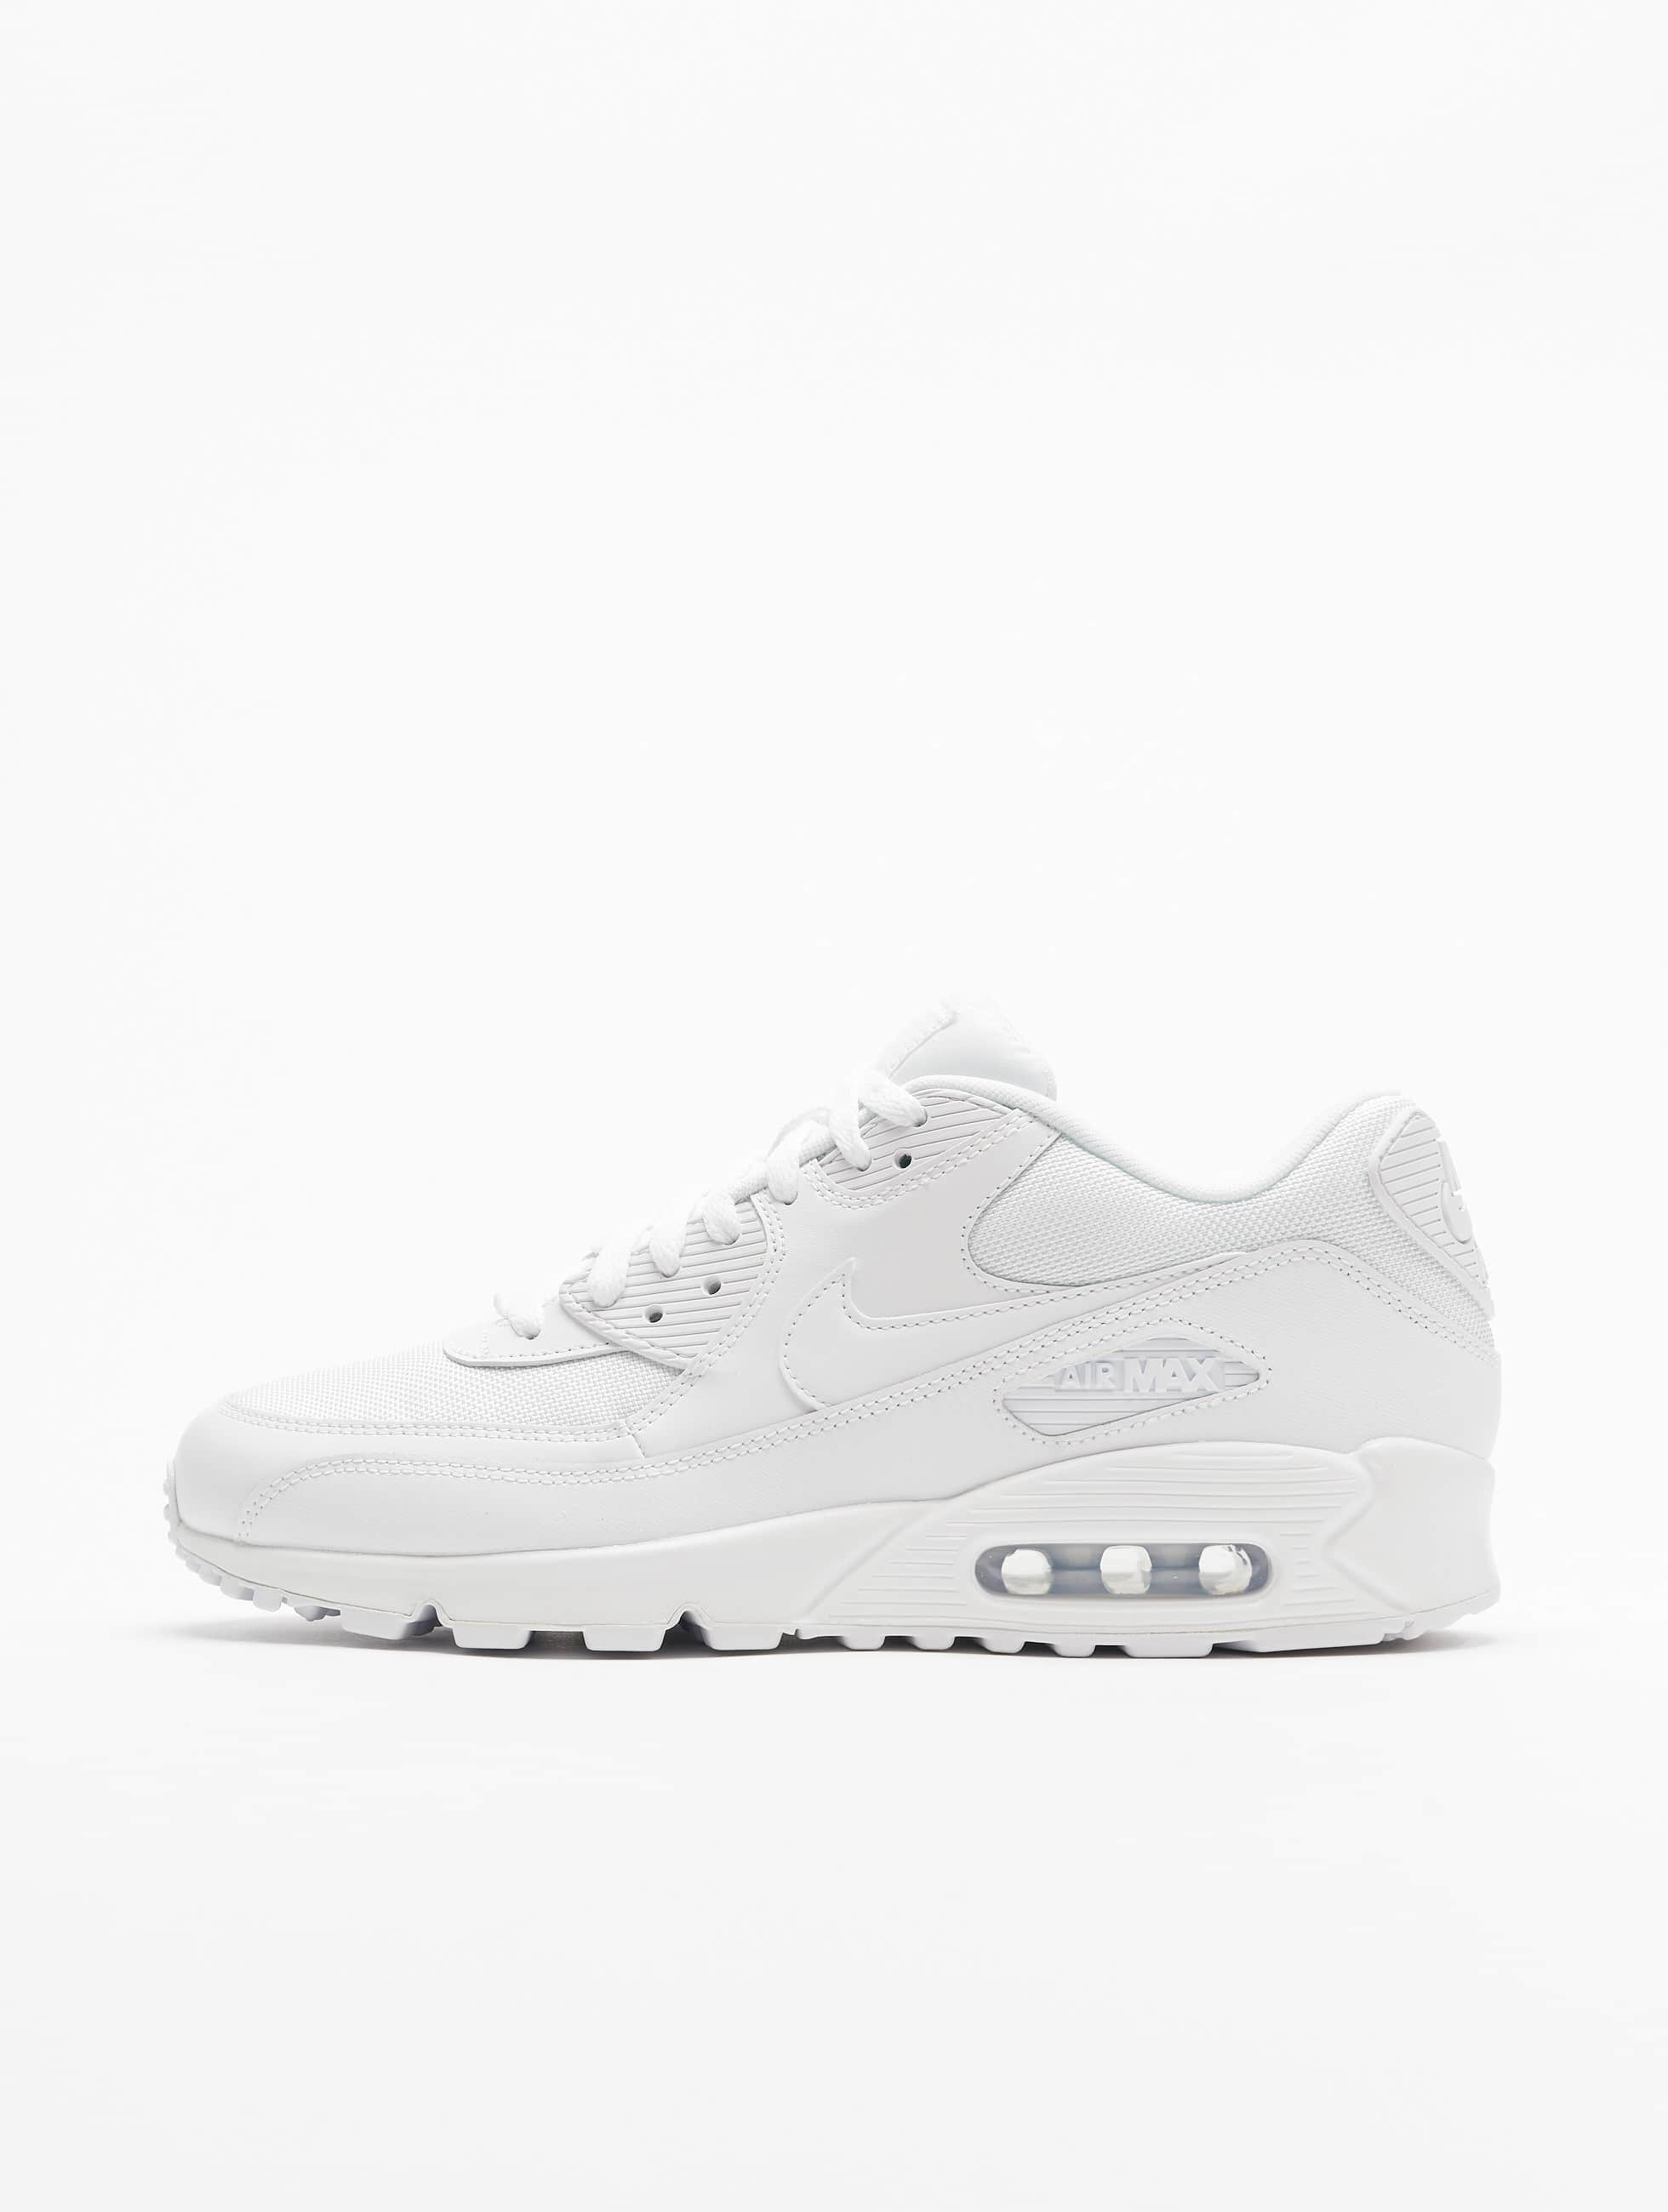 uk availability 04298 06c27 Nike Kengät Air Max 90 Essential Tennarit valkoinen 118688 . ...